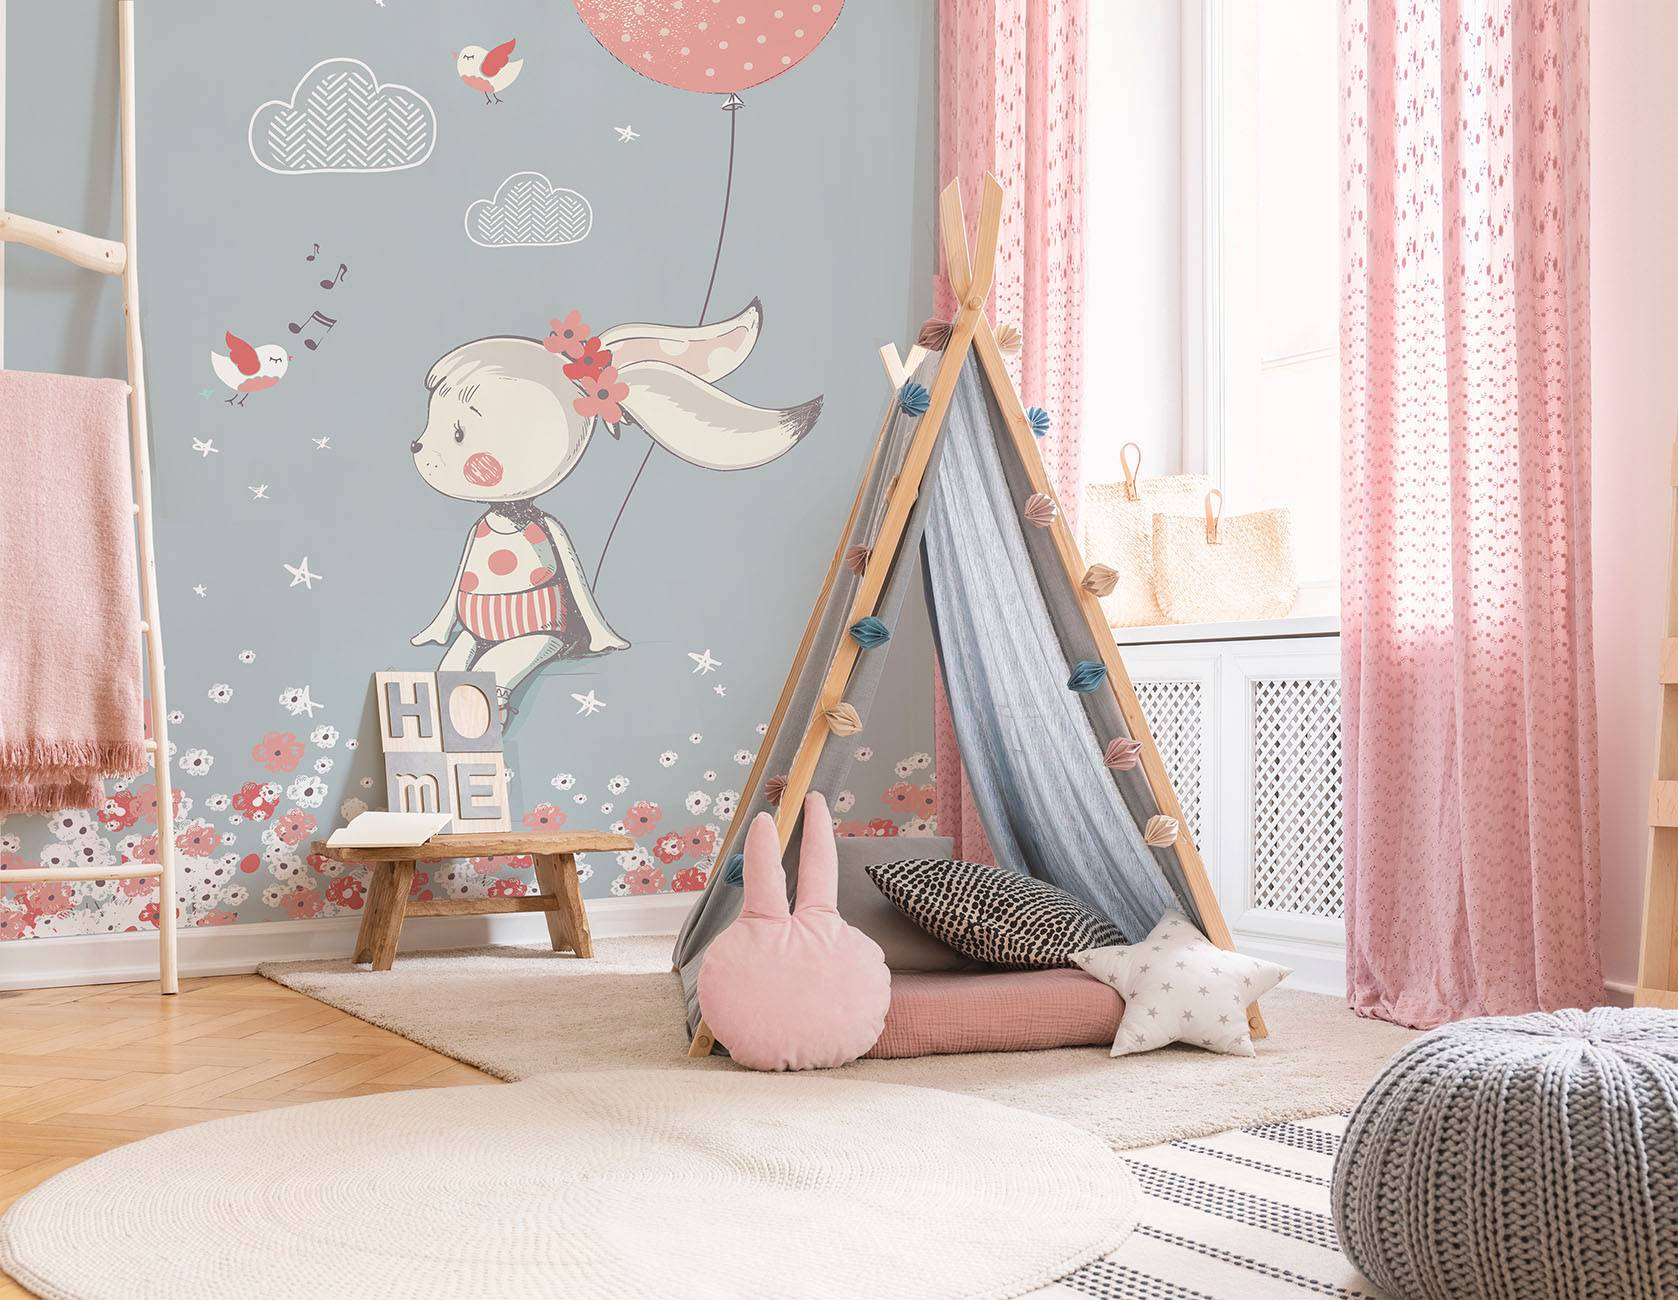 kids wallpaper, blue wallpaper, cartoons wallpaper, nursery wallpaper, school wallpaper